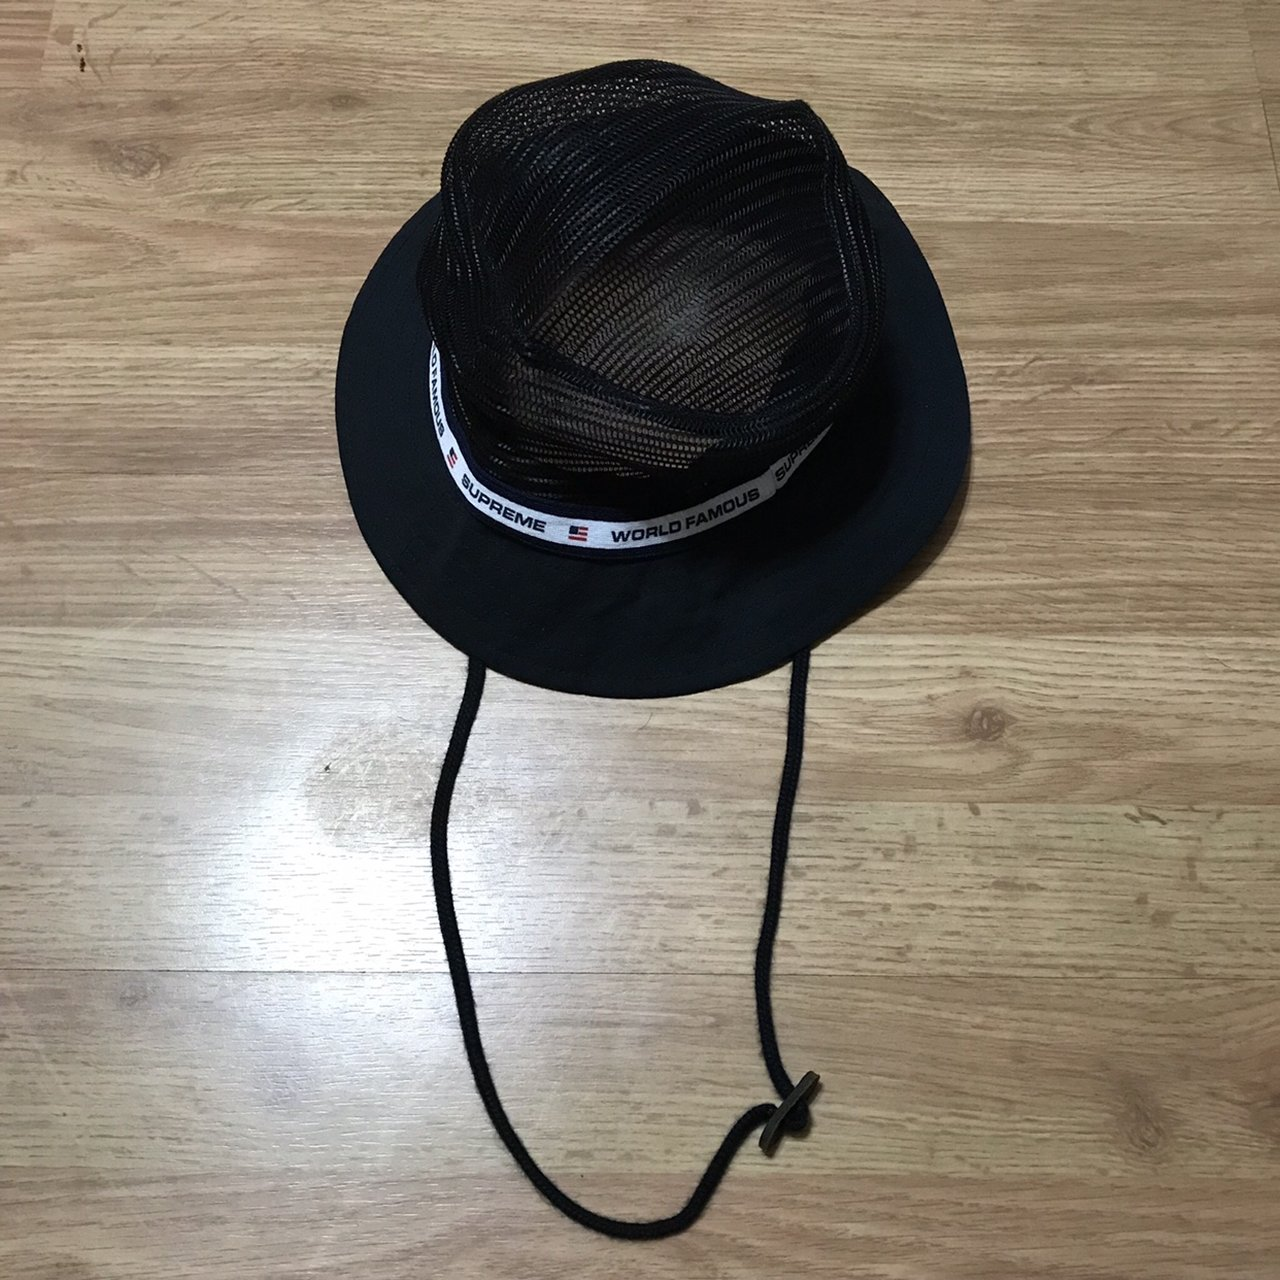 91841db6ced Supreme bucket hat very little flaws great condition  kaws - Depop